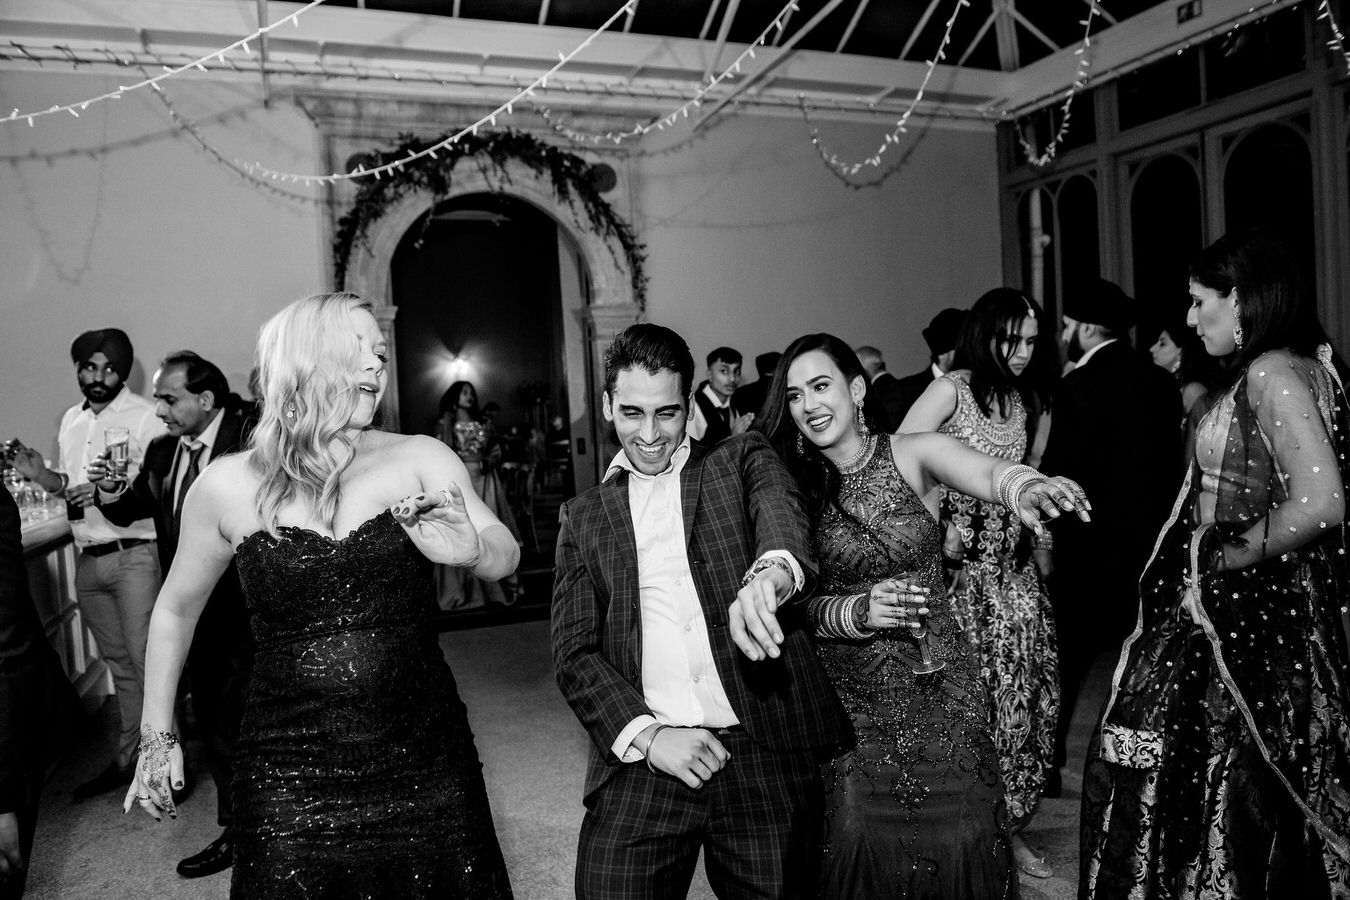 Bride with a glass of champagne in hand is dancing along with her wedding guests.